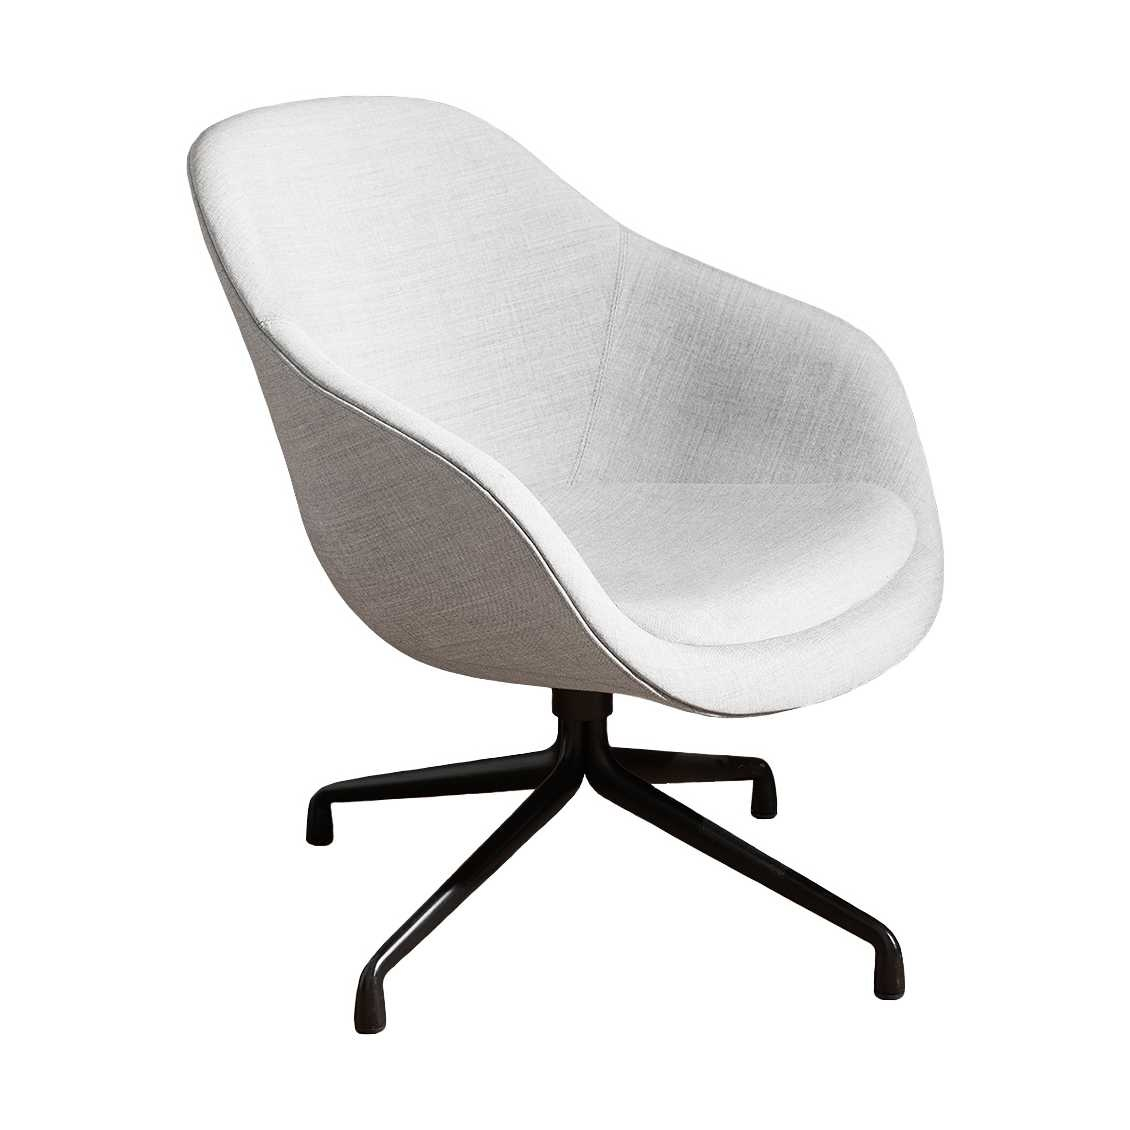 Sensational About A Lounge Chair Low Aal81 Ibusinesslaw Wood Chair Design Ideas Ibusinesslaworg